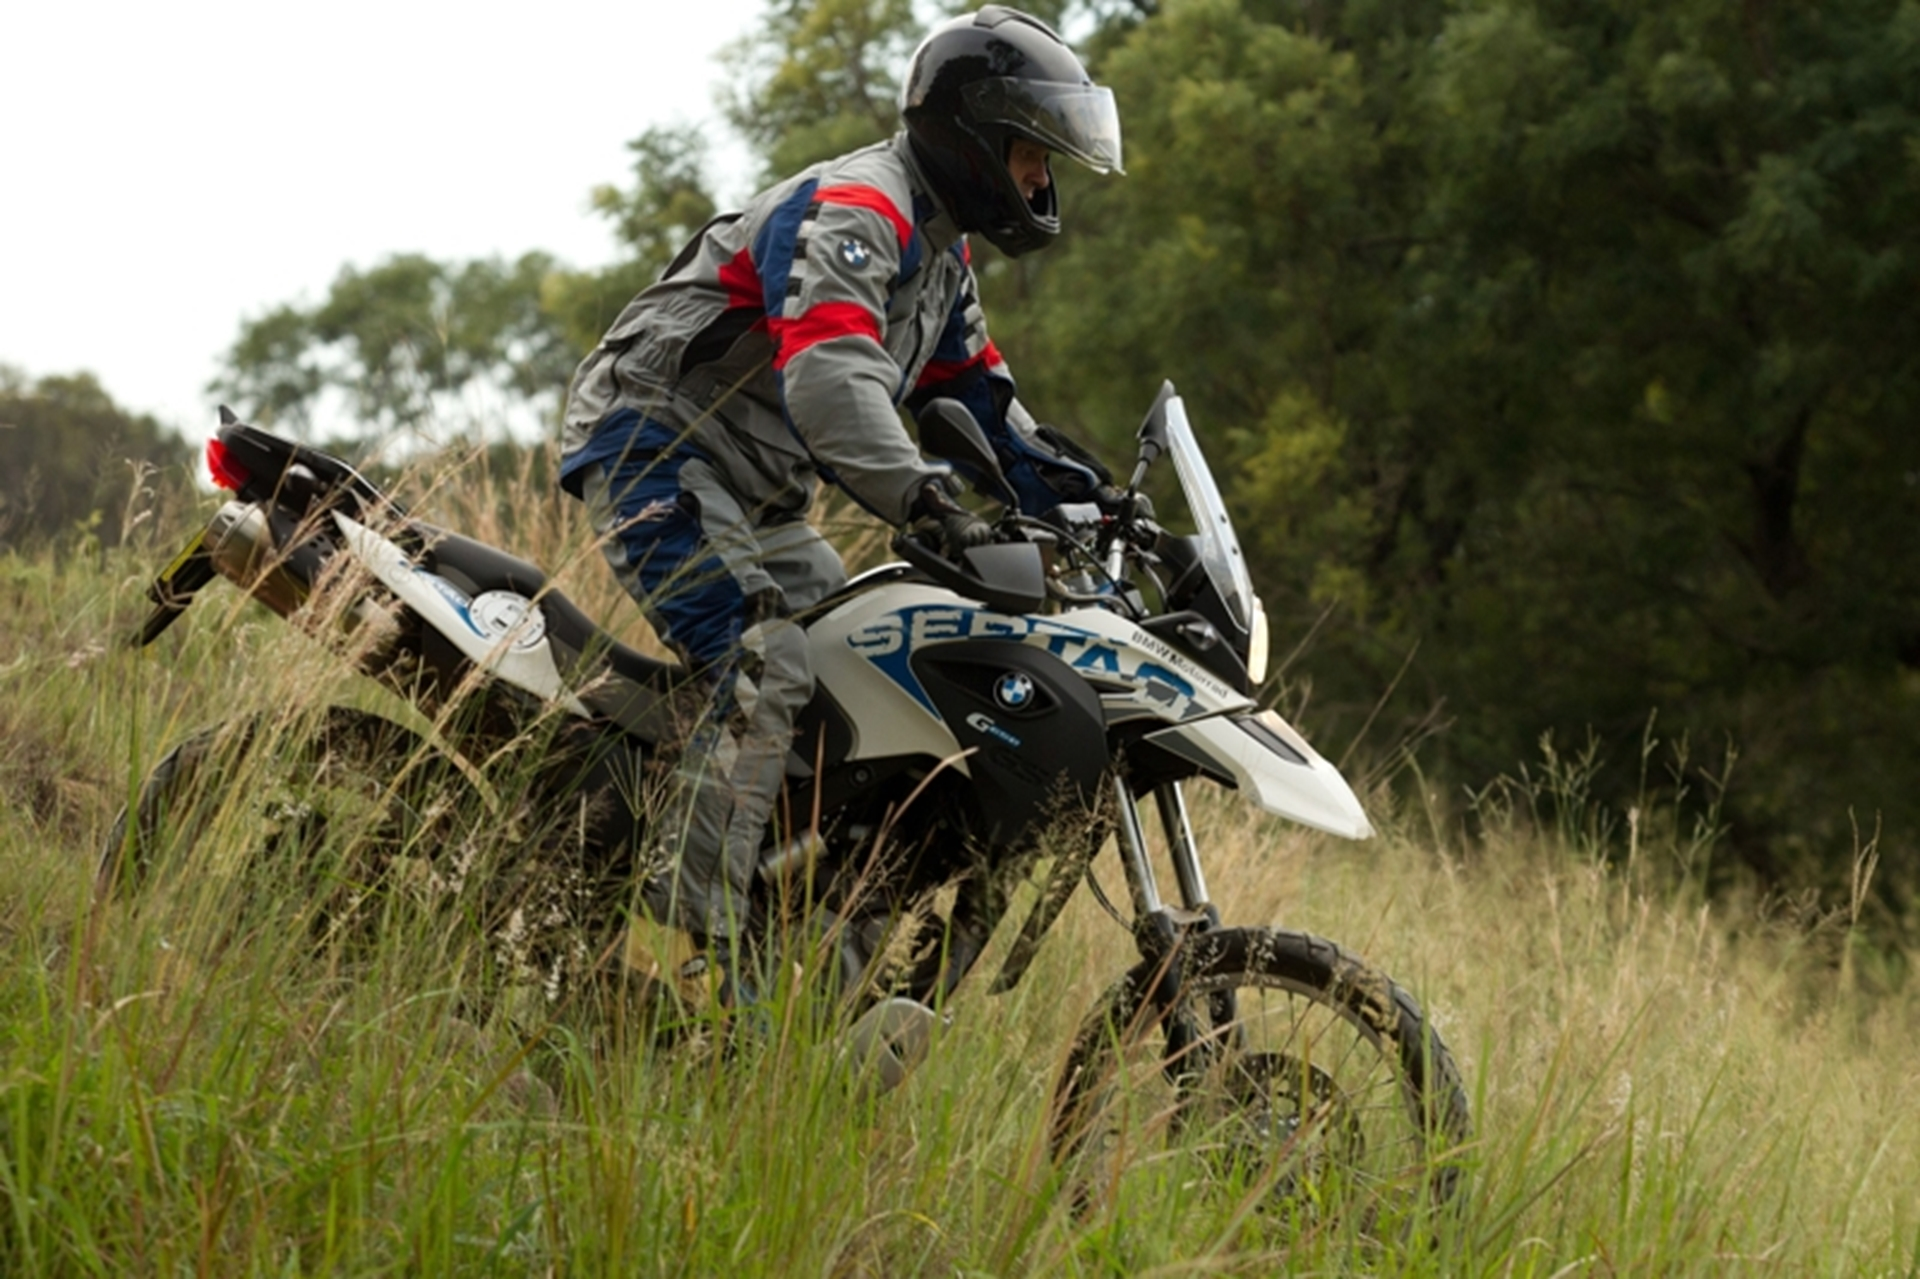 BMW G 650 GS Sertao off-road